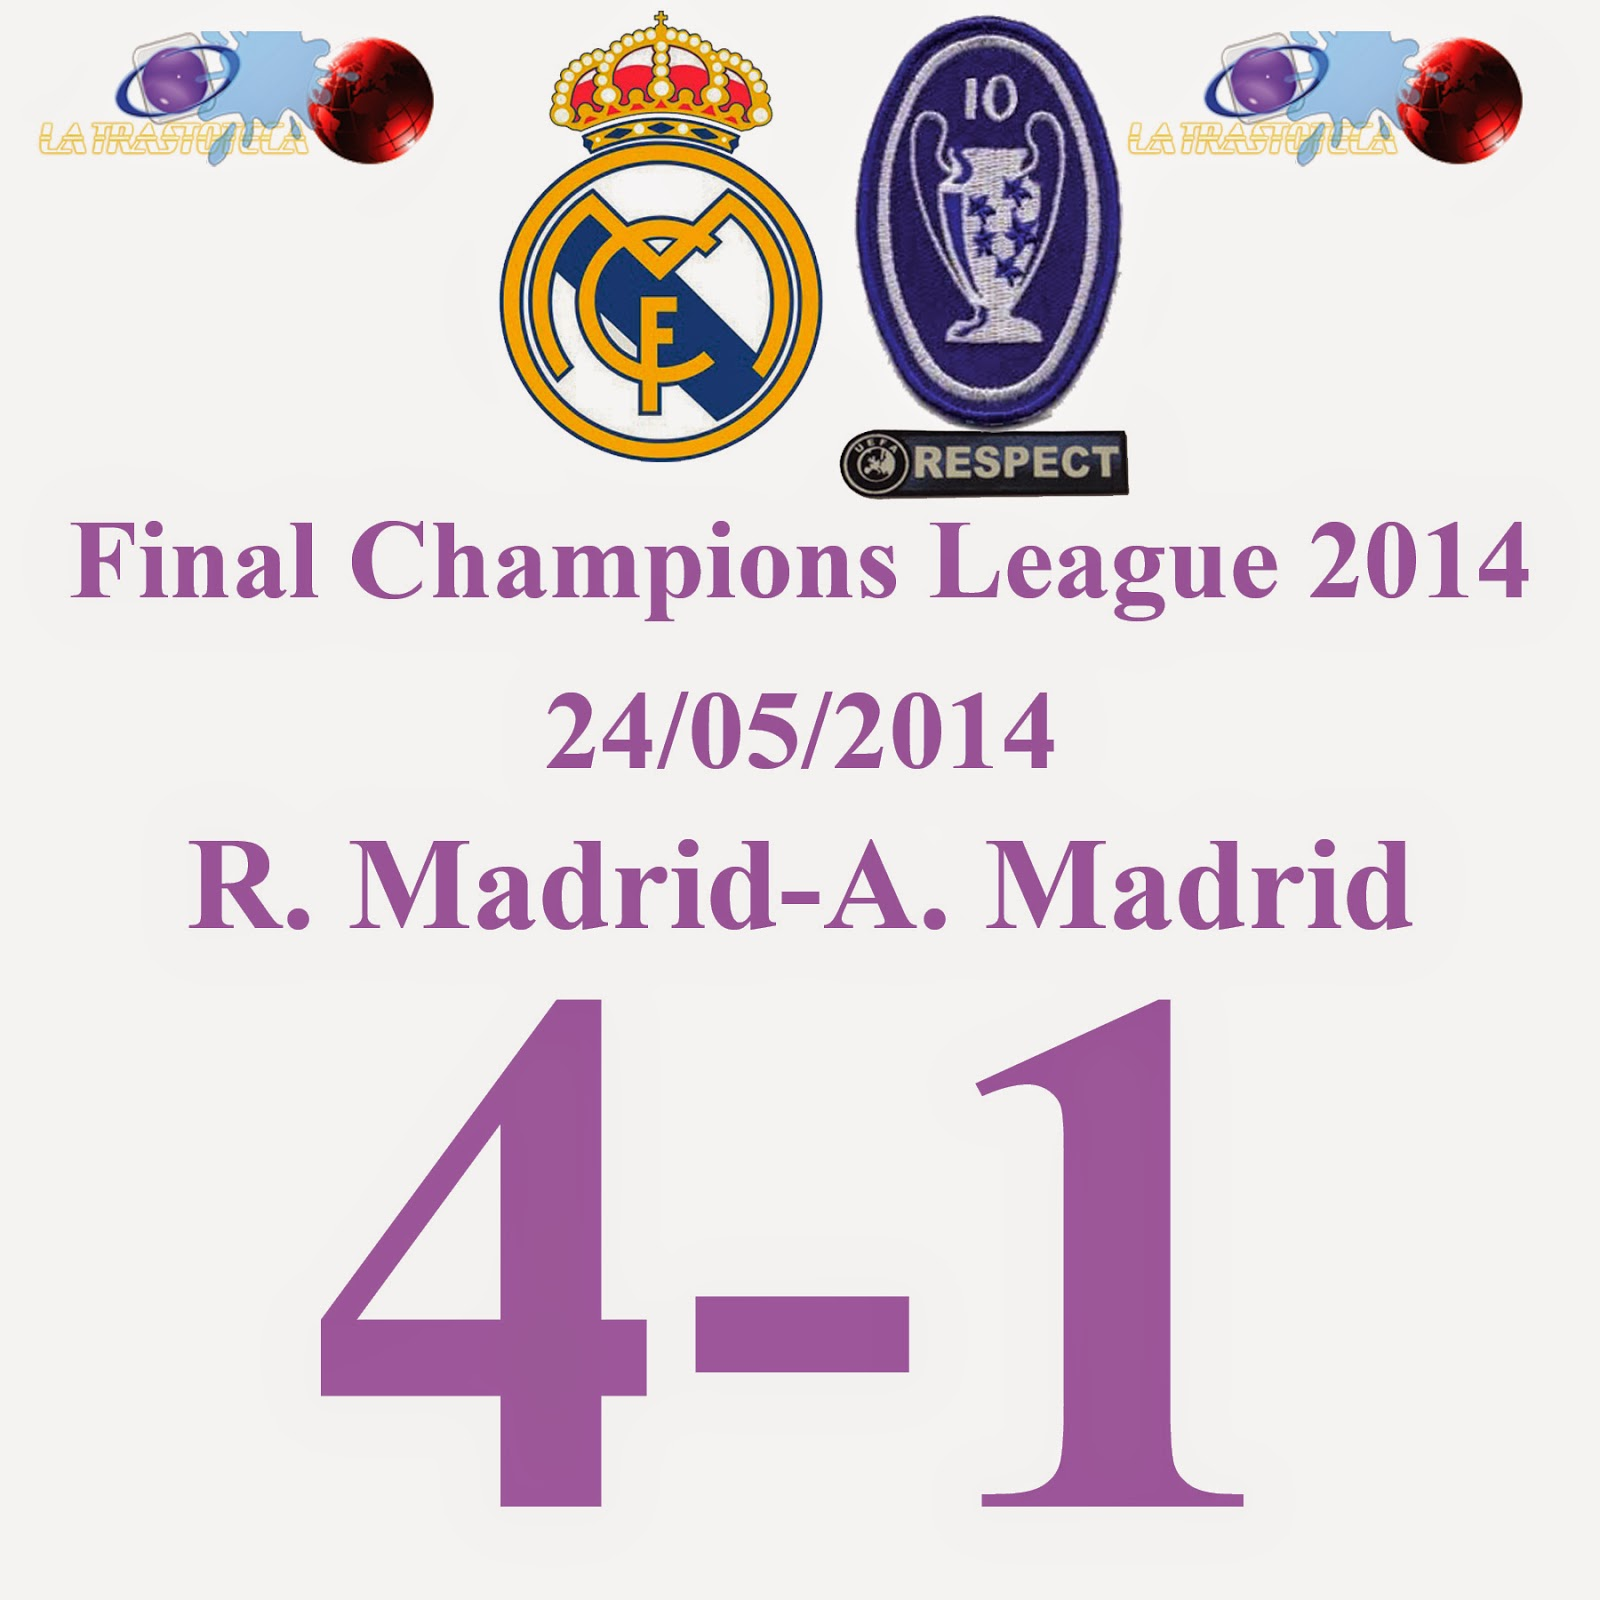 Real Madrid 4 - 1 Atlético de Madrid 24/05/2014